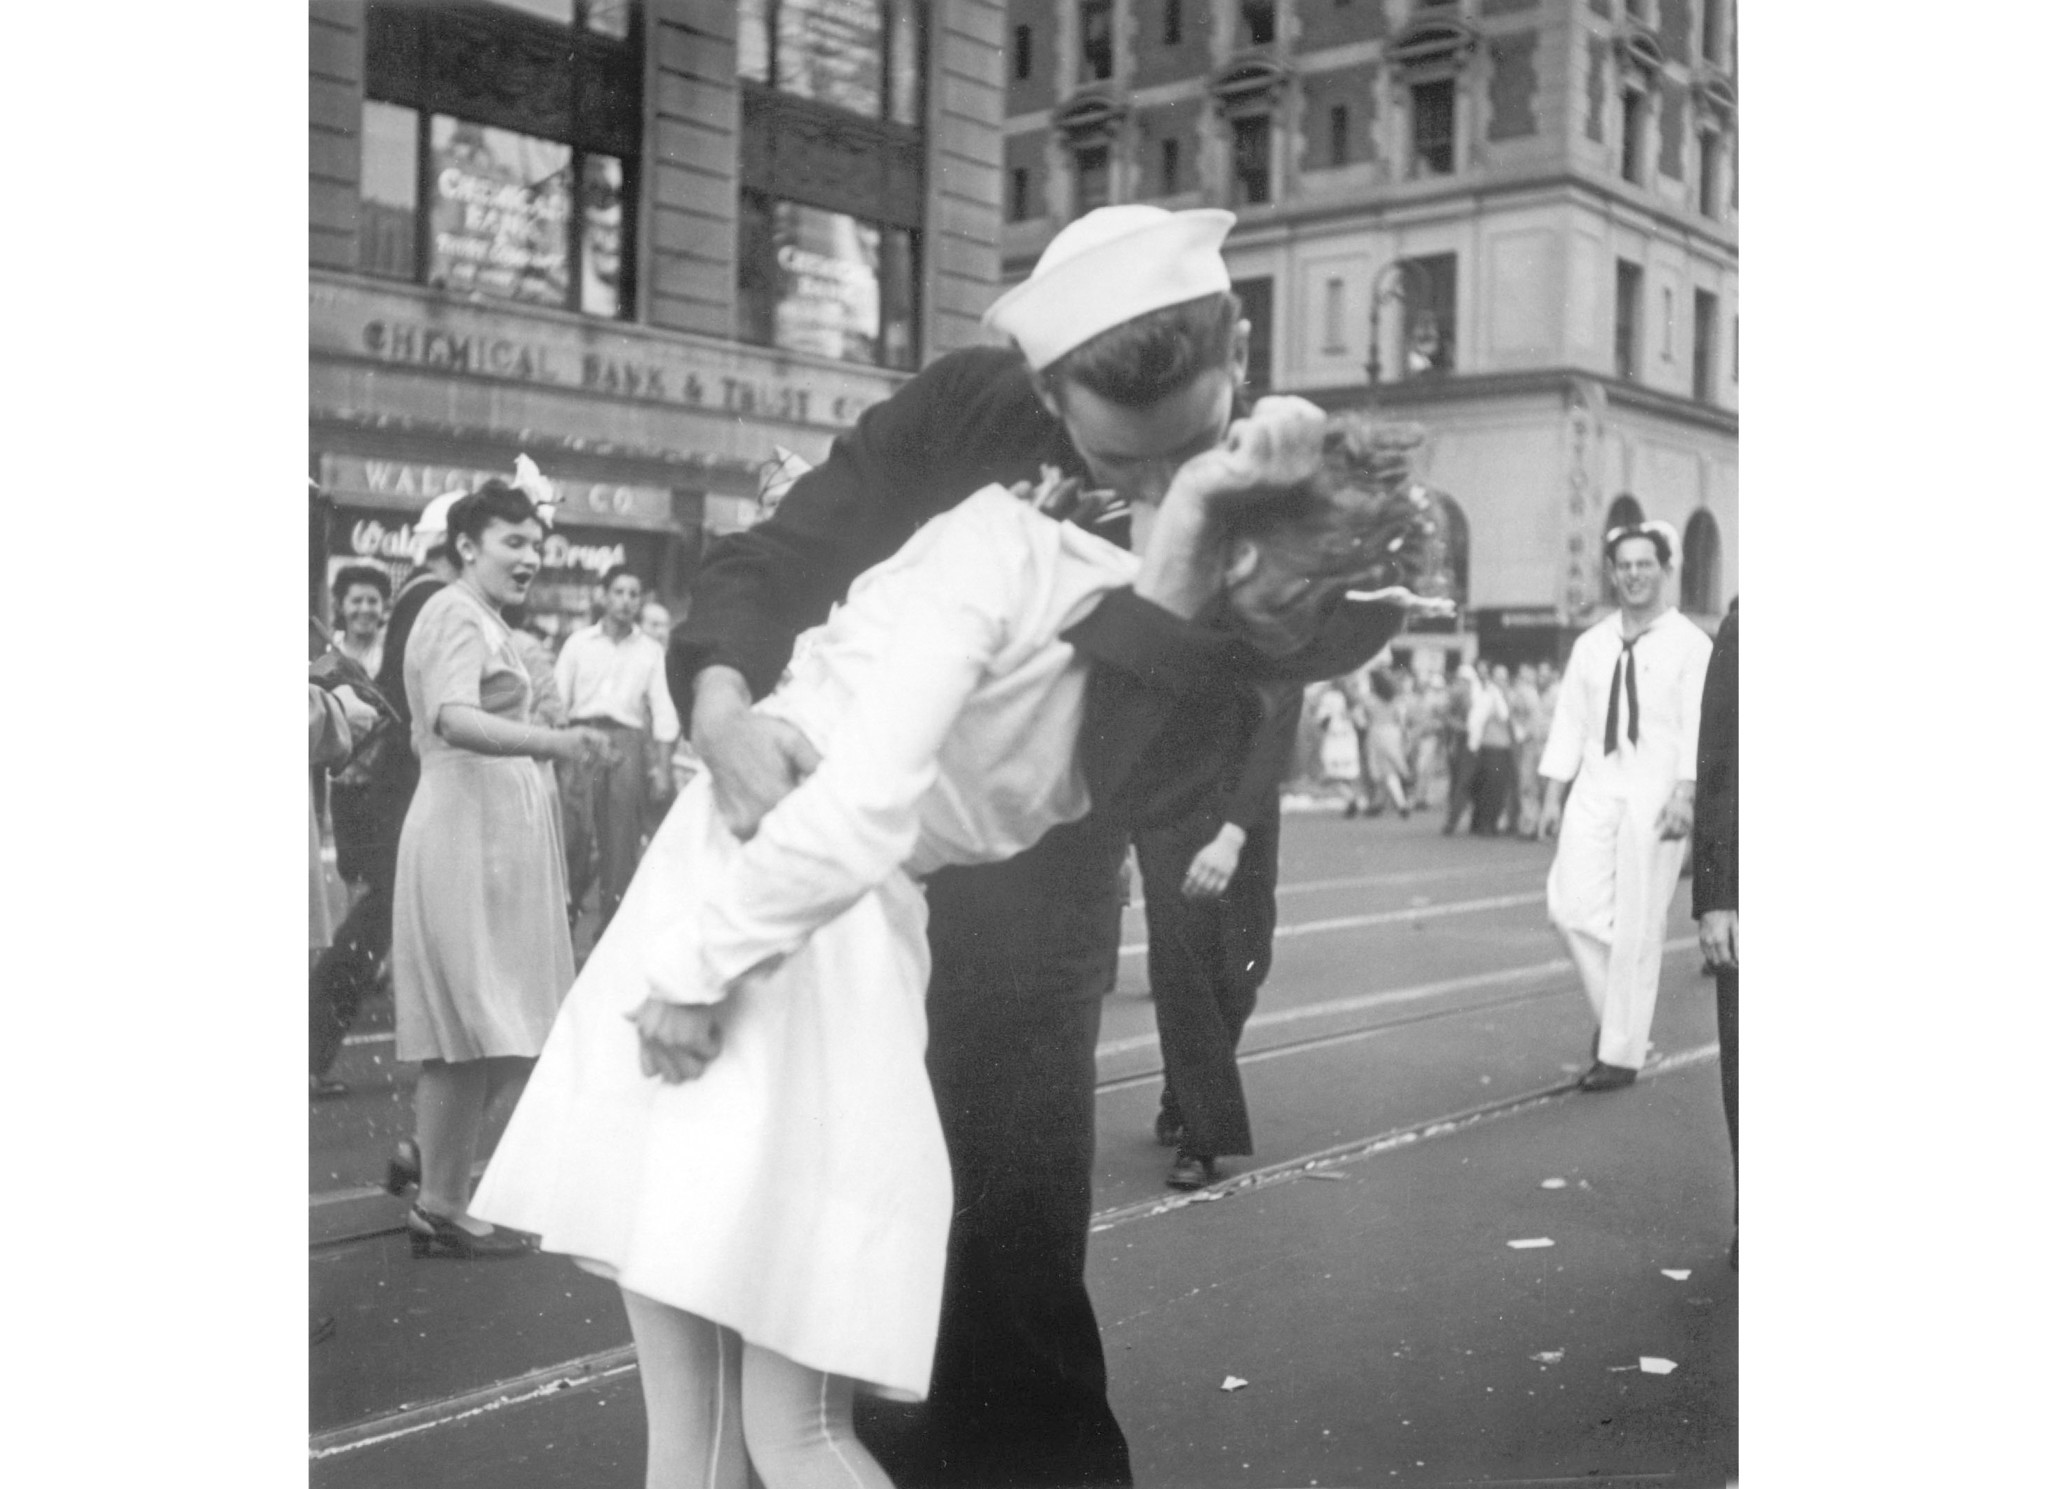 Sailor in iconic Times Square kiss photo dies at 95